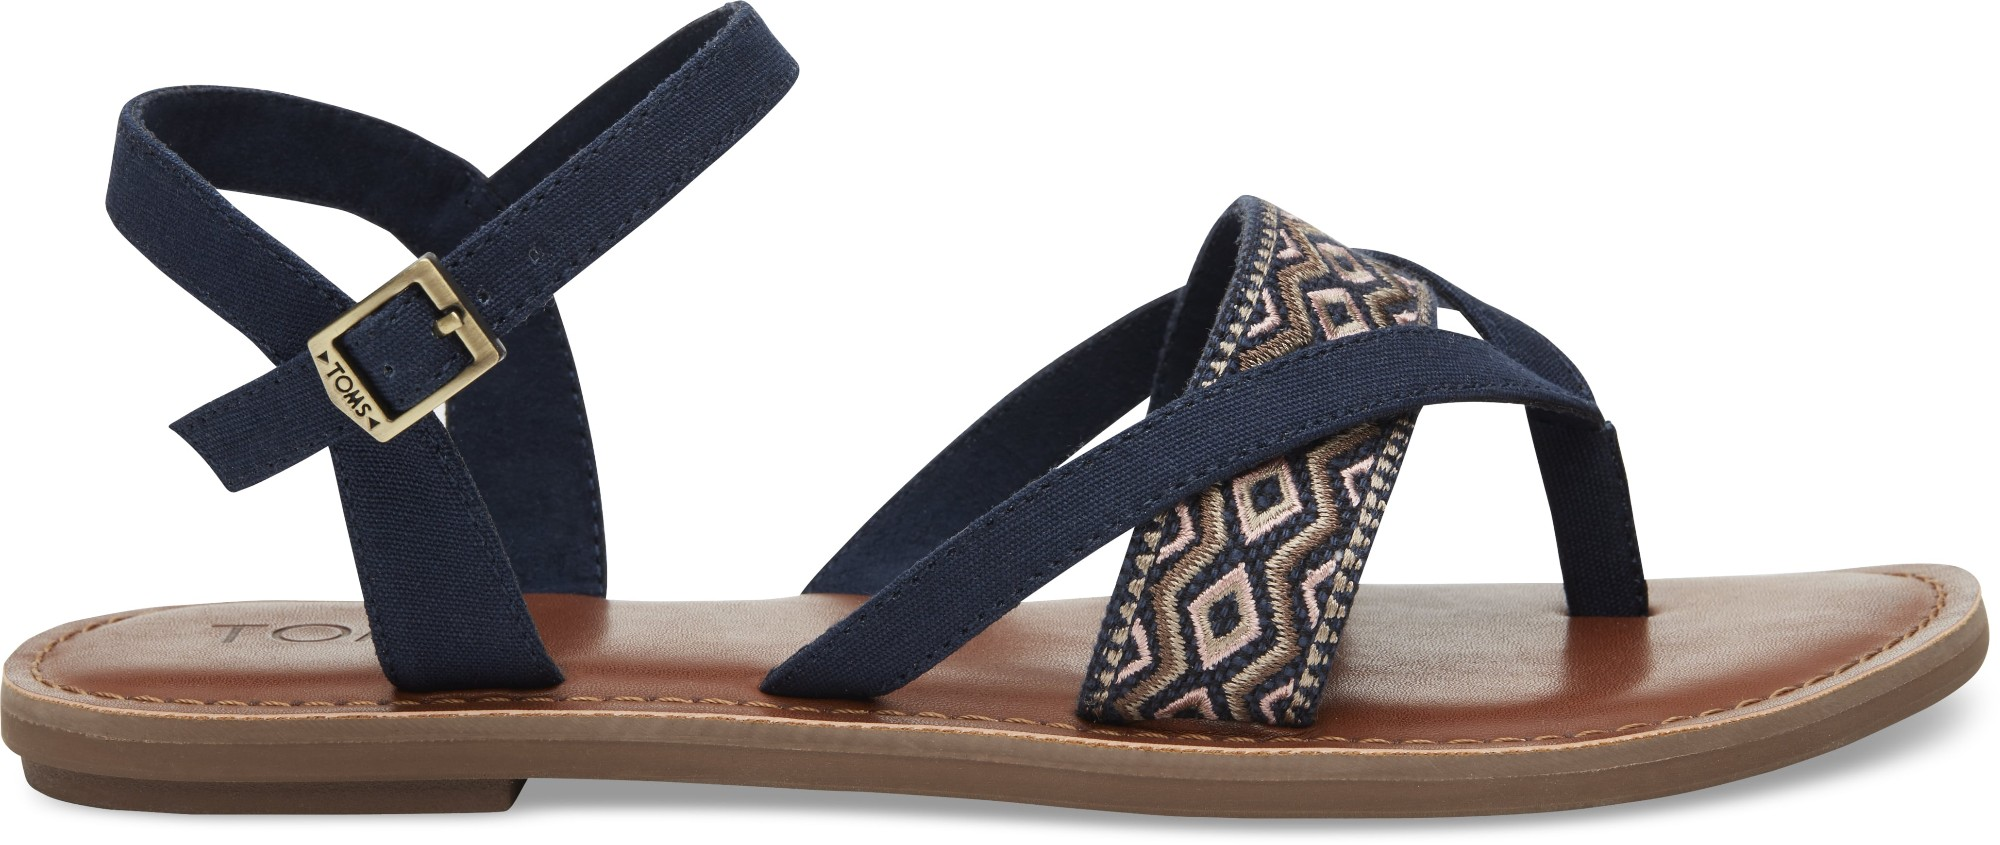 TOMS Canvas Embroidery Women's Lexie Sandal Navy 36,5